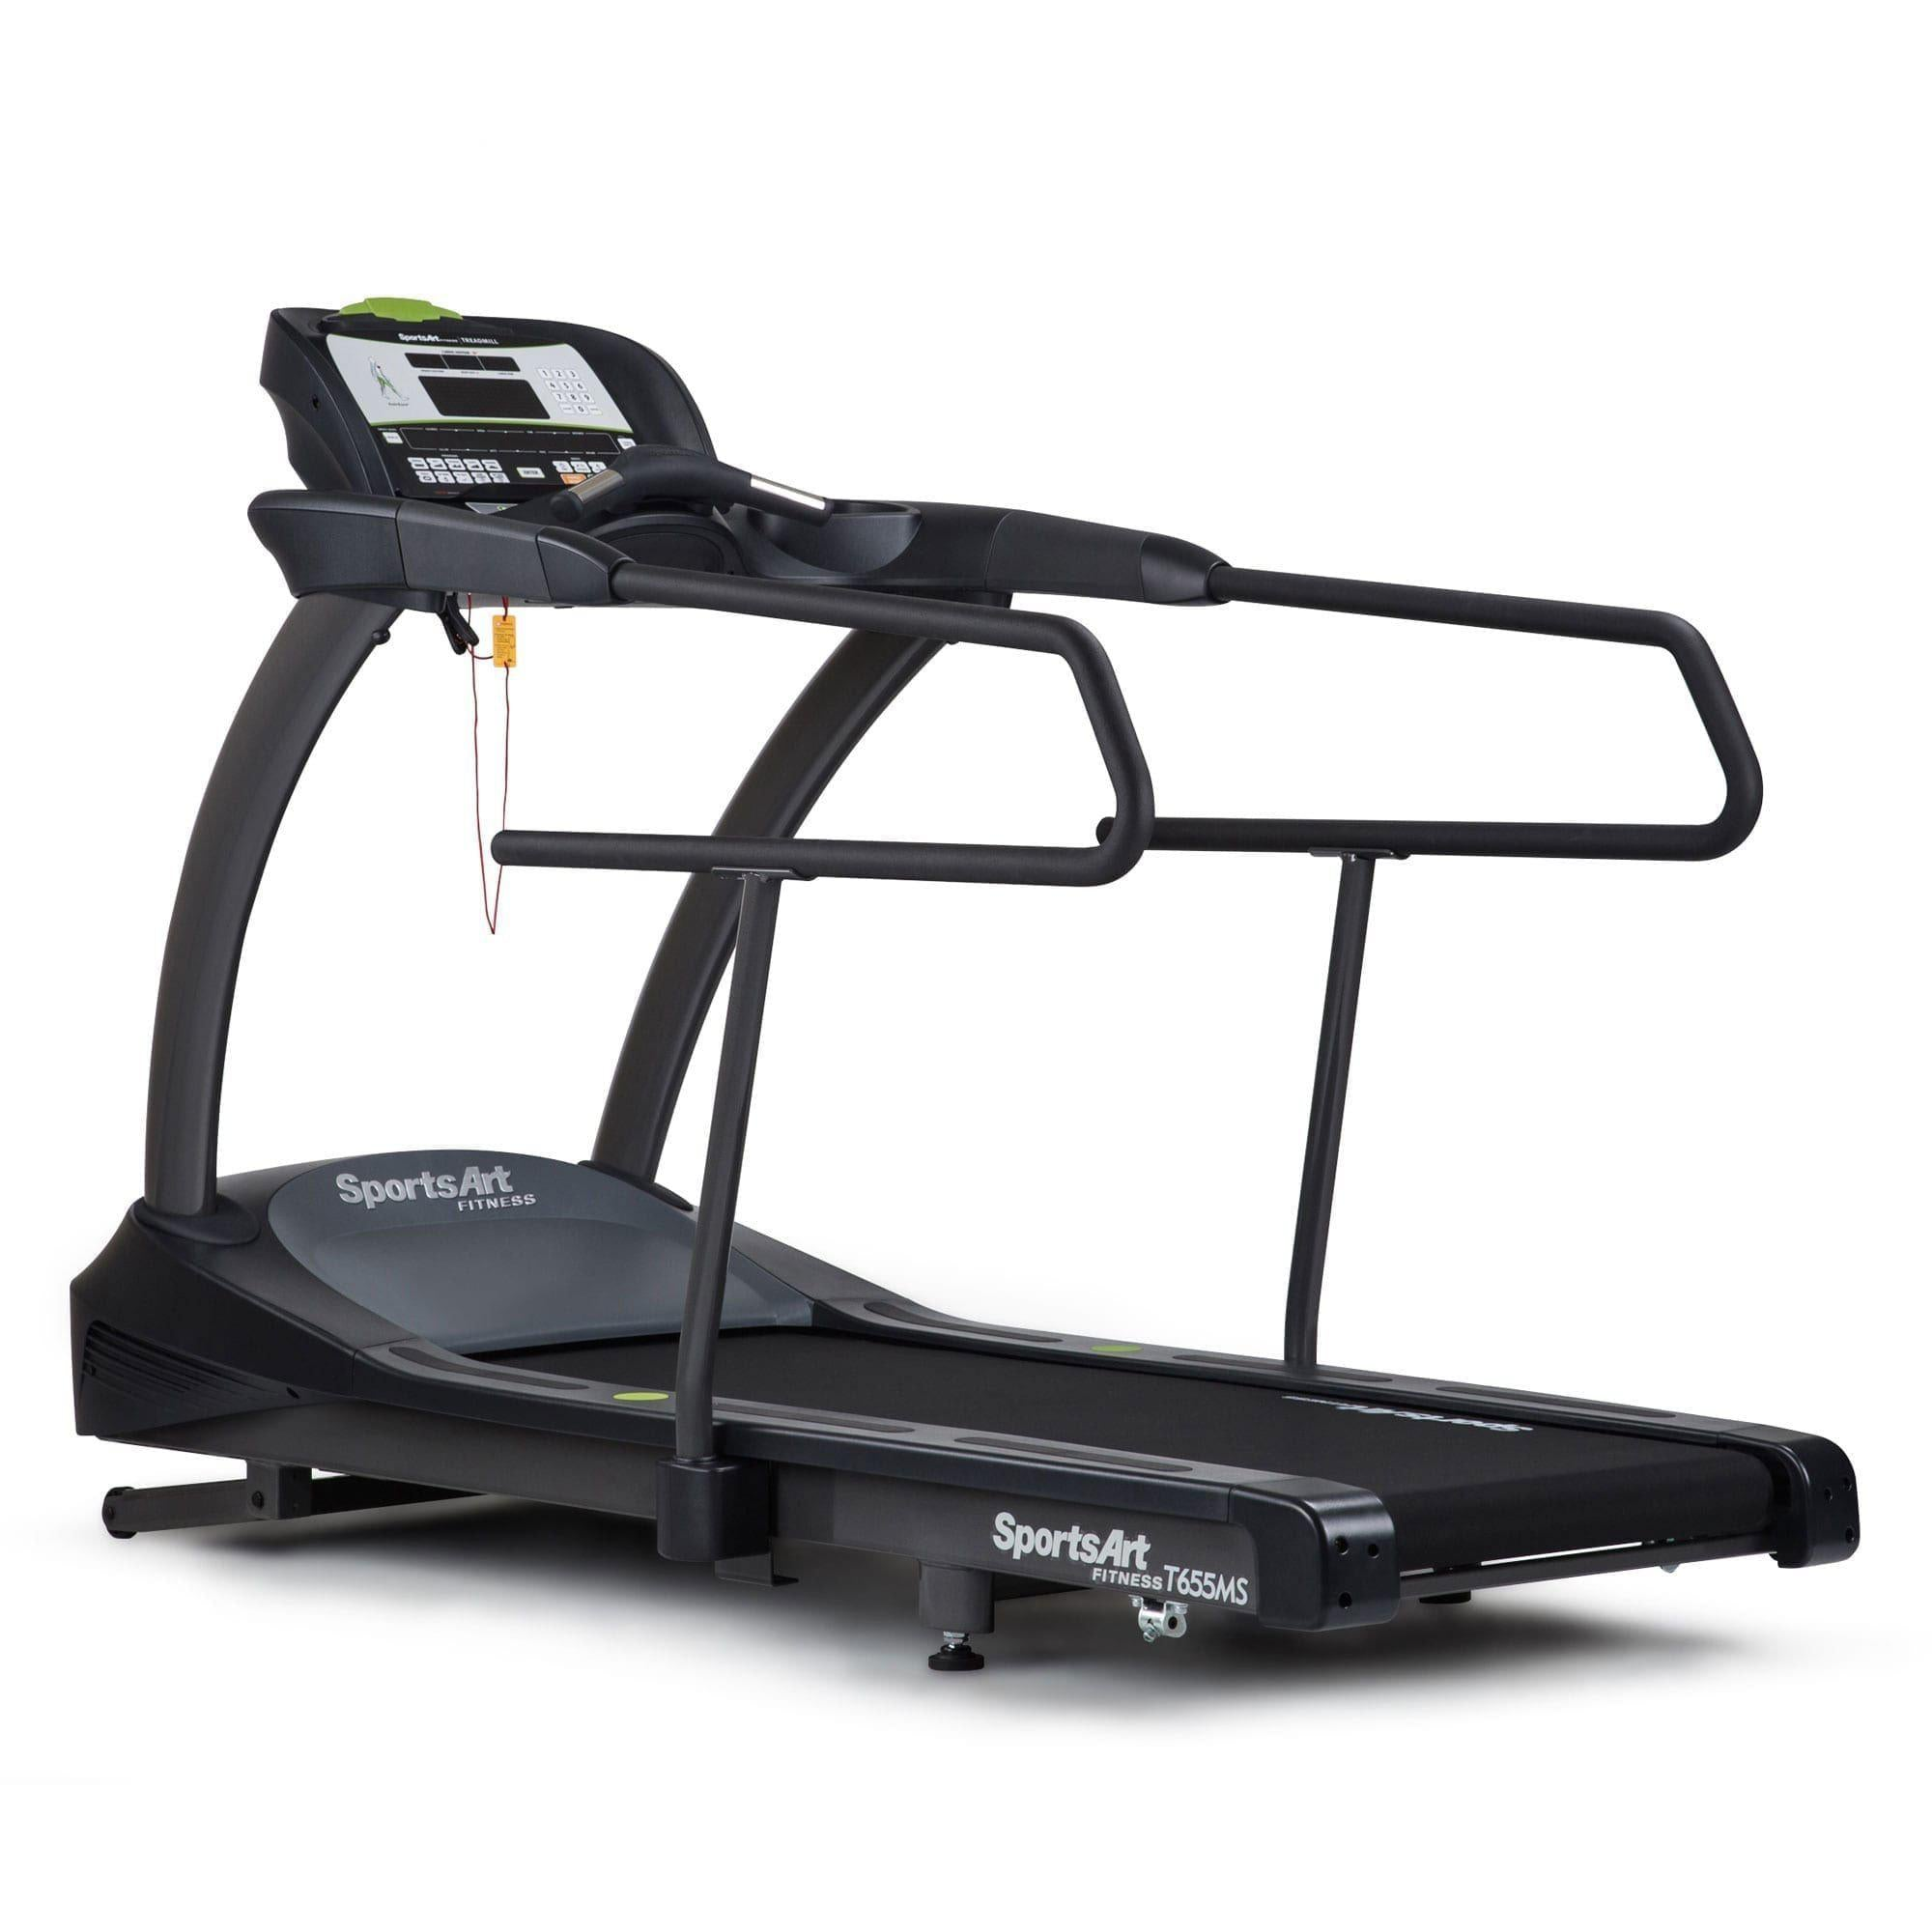 SportsArt T655MS Medical Treadmill with LCD Screen and Medical Rails-Treadmill-SportsArt-Cardio Online